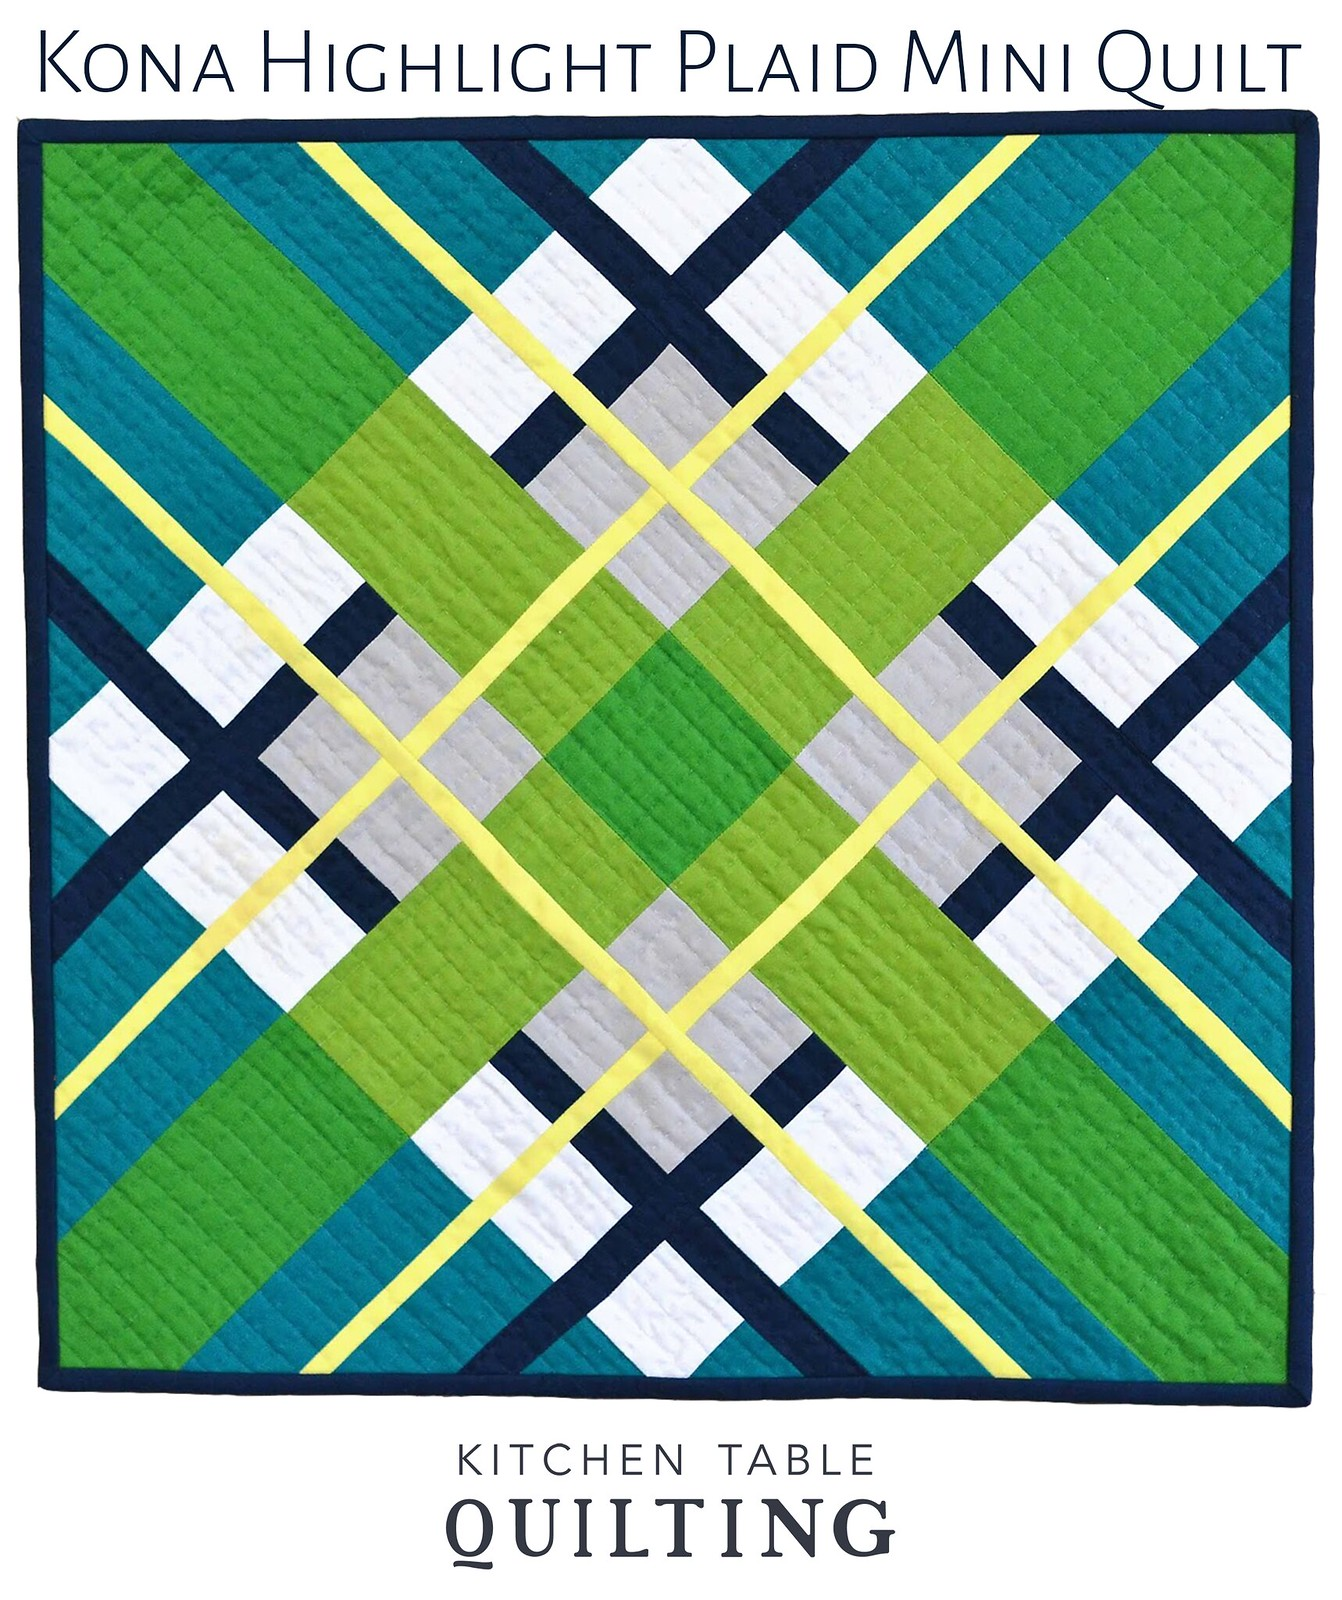 Kona Highlight Plaid Mini Quilt